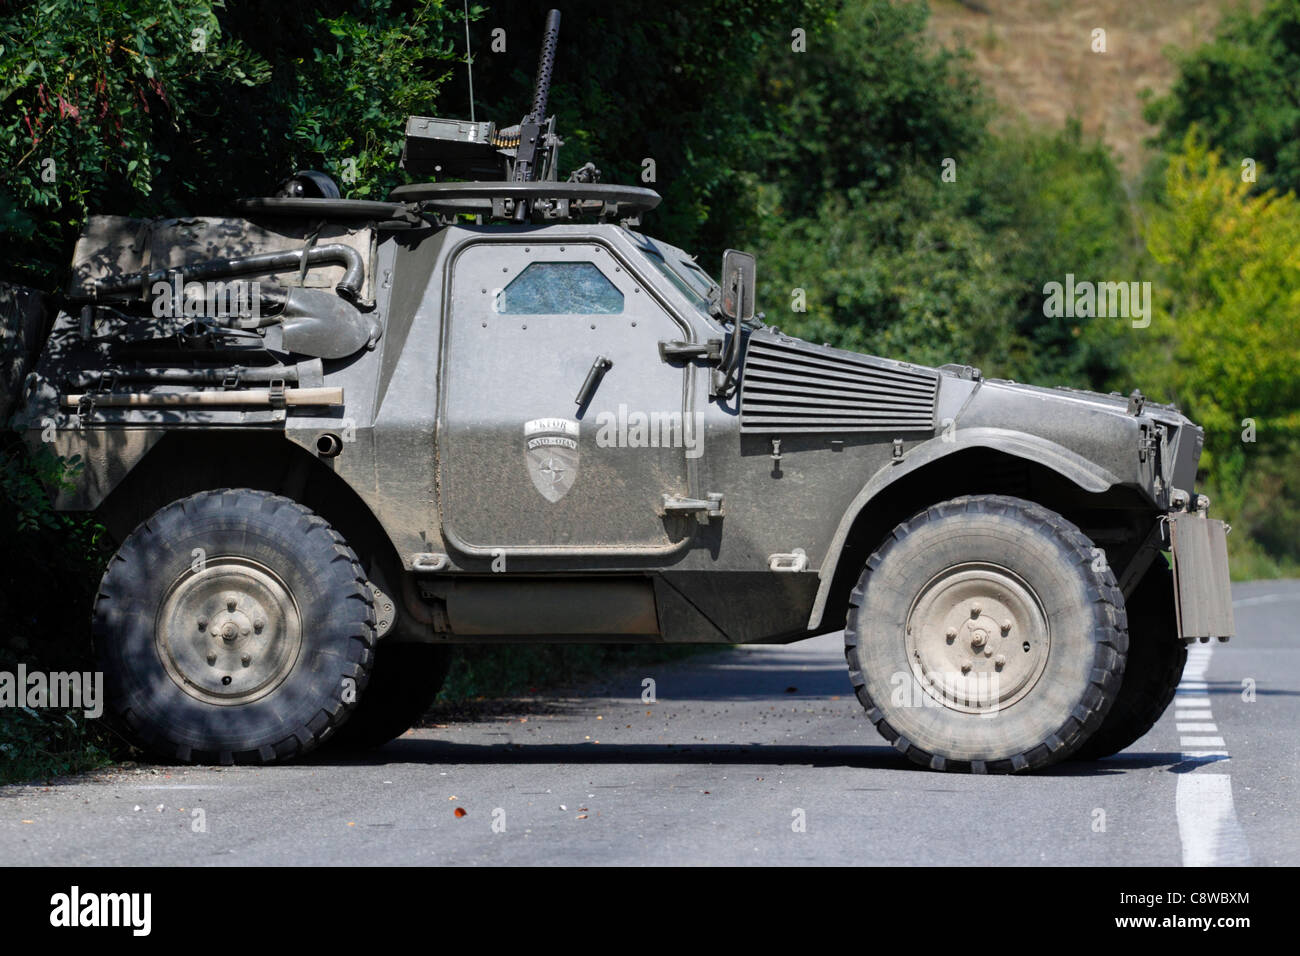 Portuguese armored reconnaissance vehicle with KFOR markings in Northern Kosovo - Stock Image